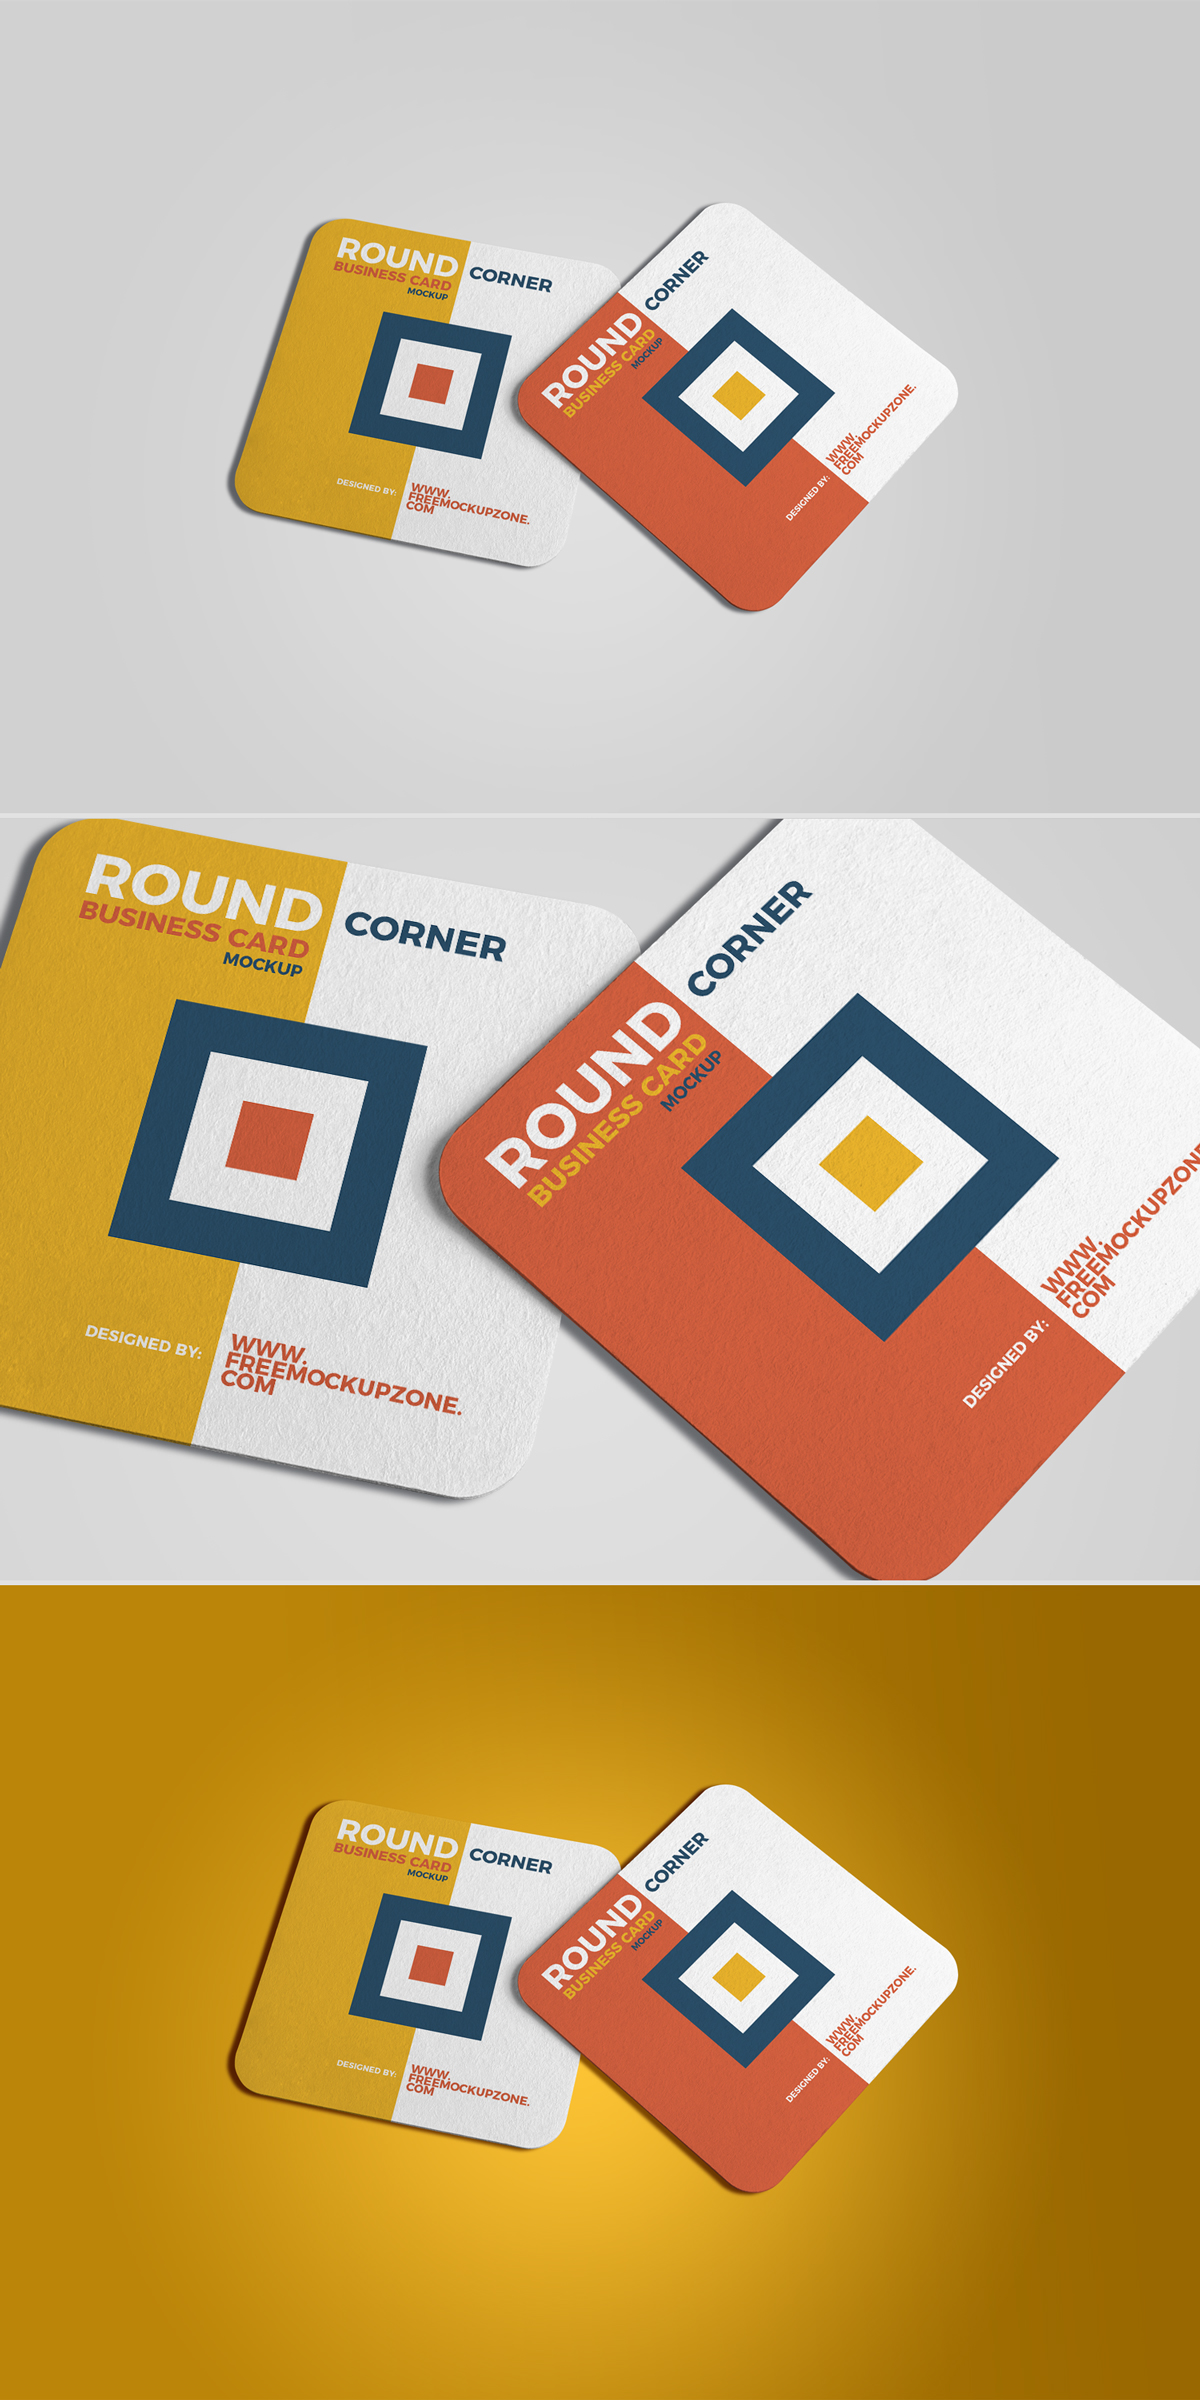 Free square round corner business card mockup 2018 on behance reheart Image collections